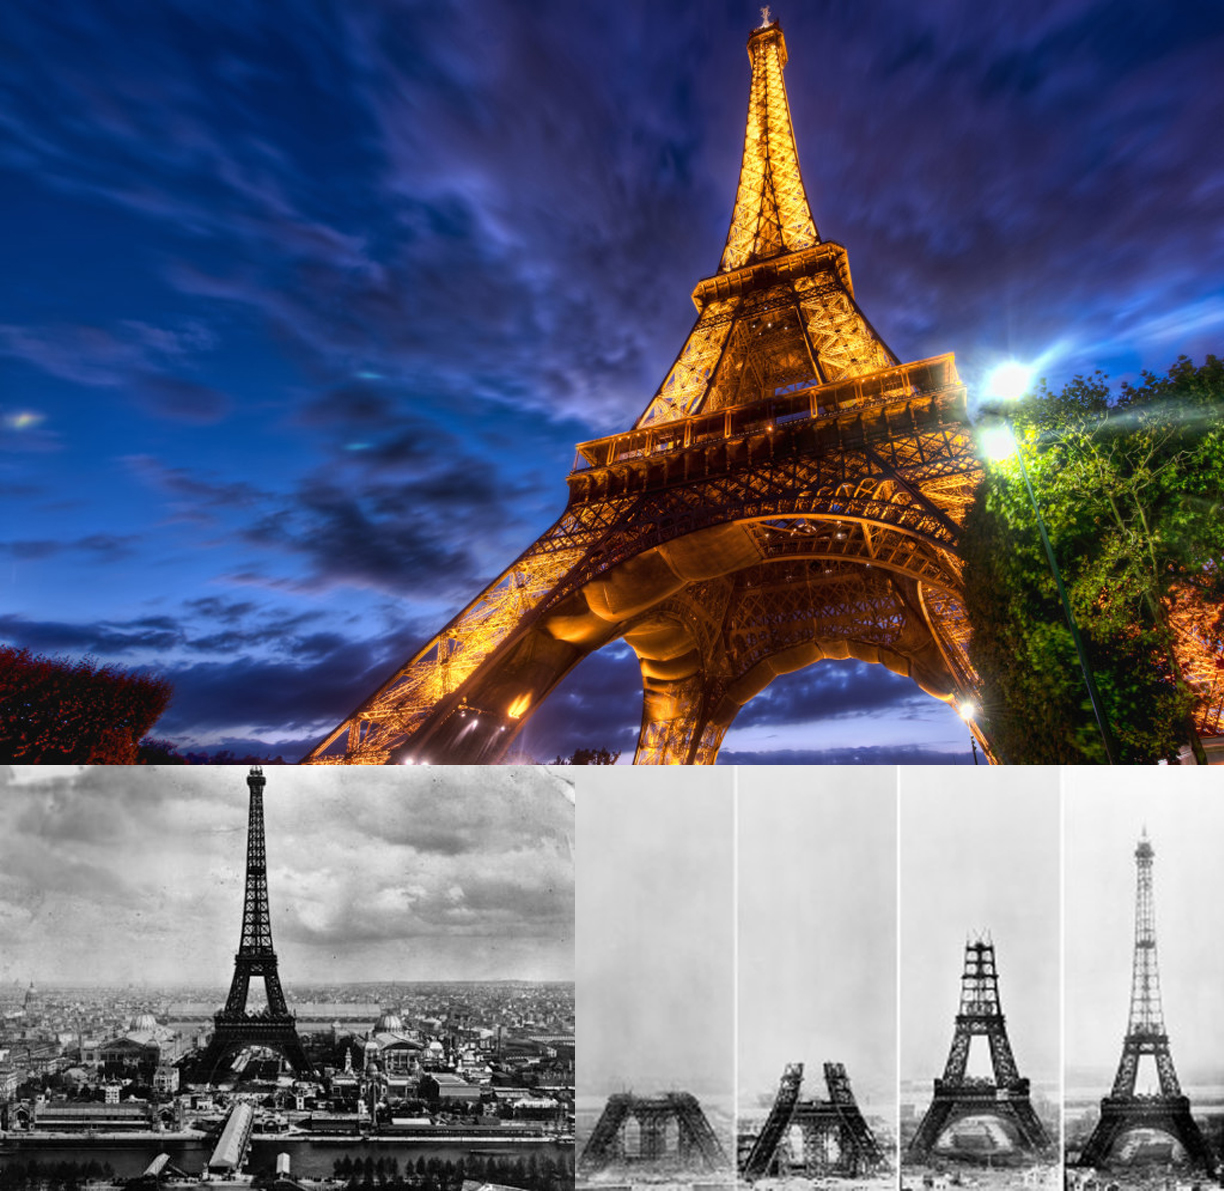 Eiffel Tower opens on March 31, 1889